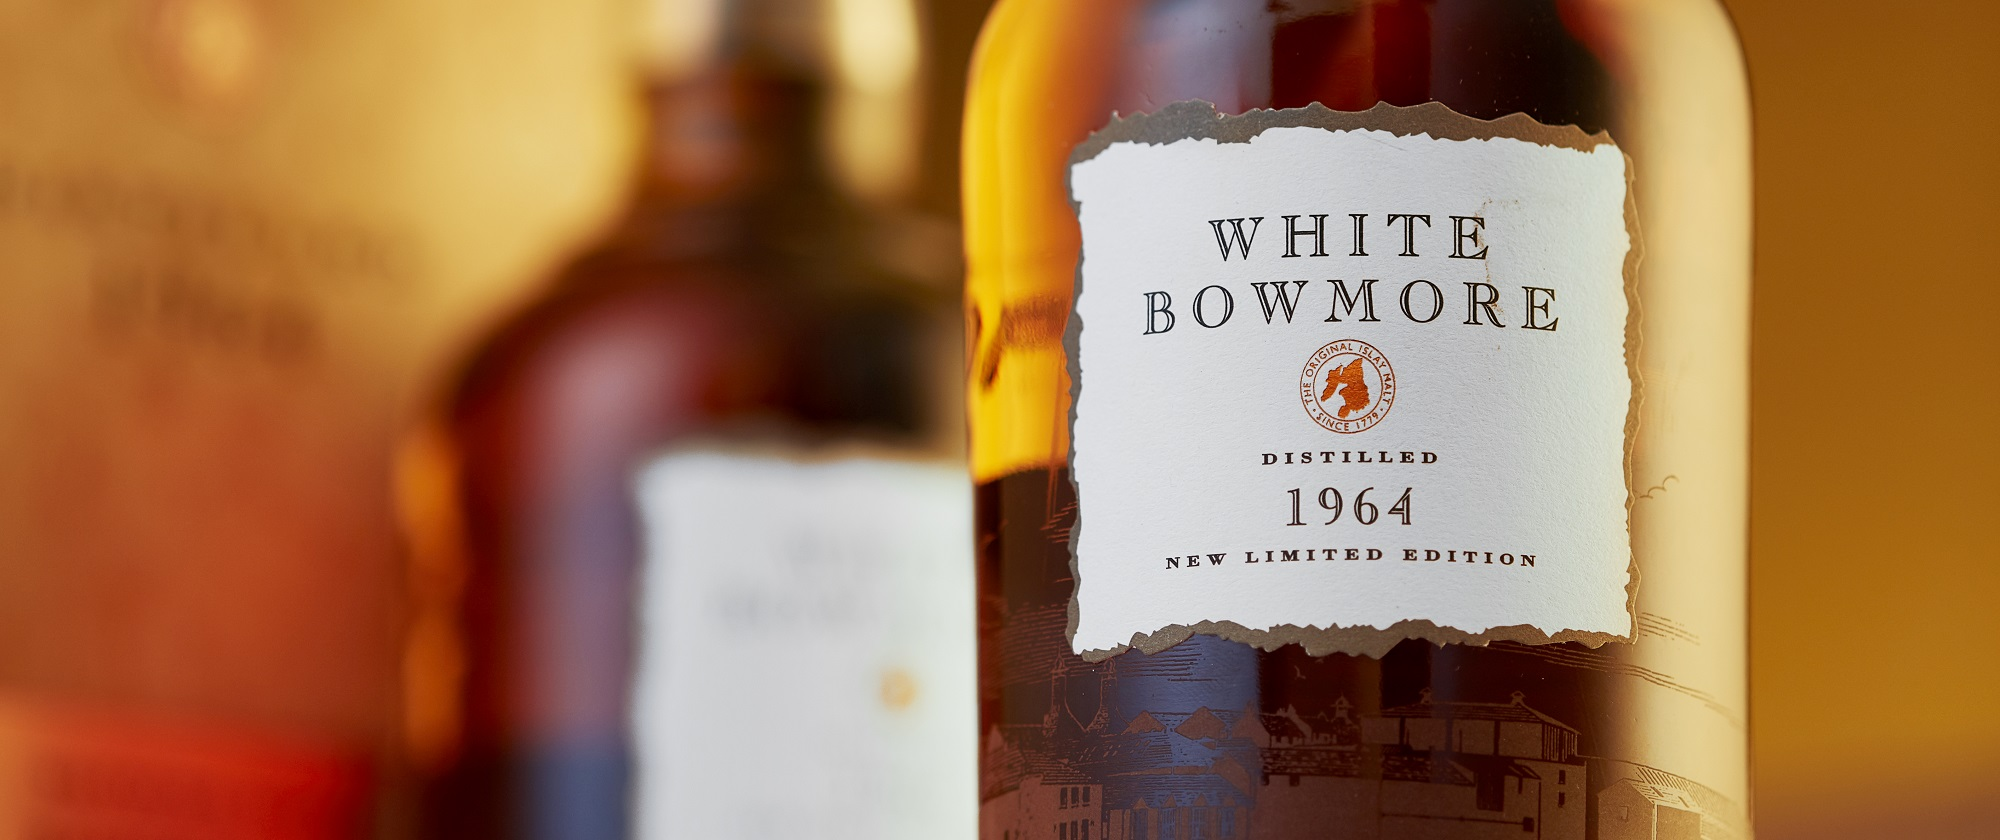 The Golden Age of Whisky